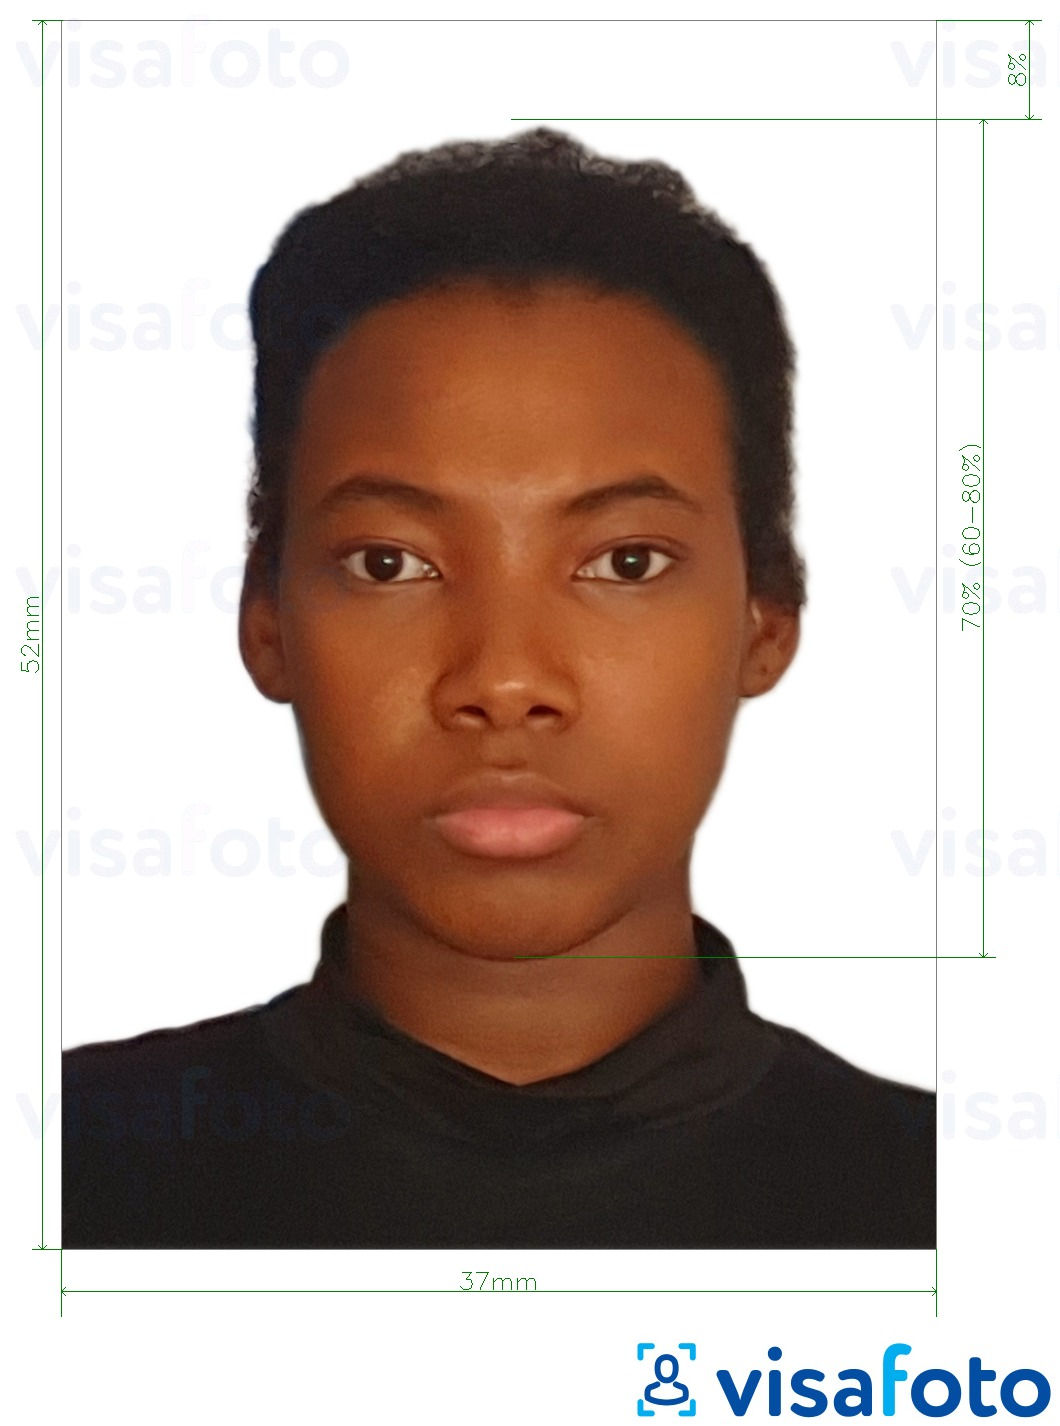 Example of photo for Namibia passport 37x52mm (3.7x5.2 cm) with exact size specification